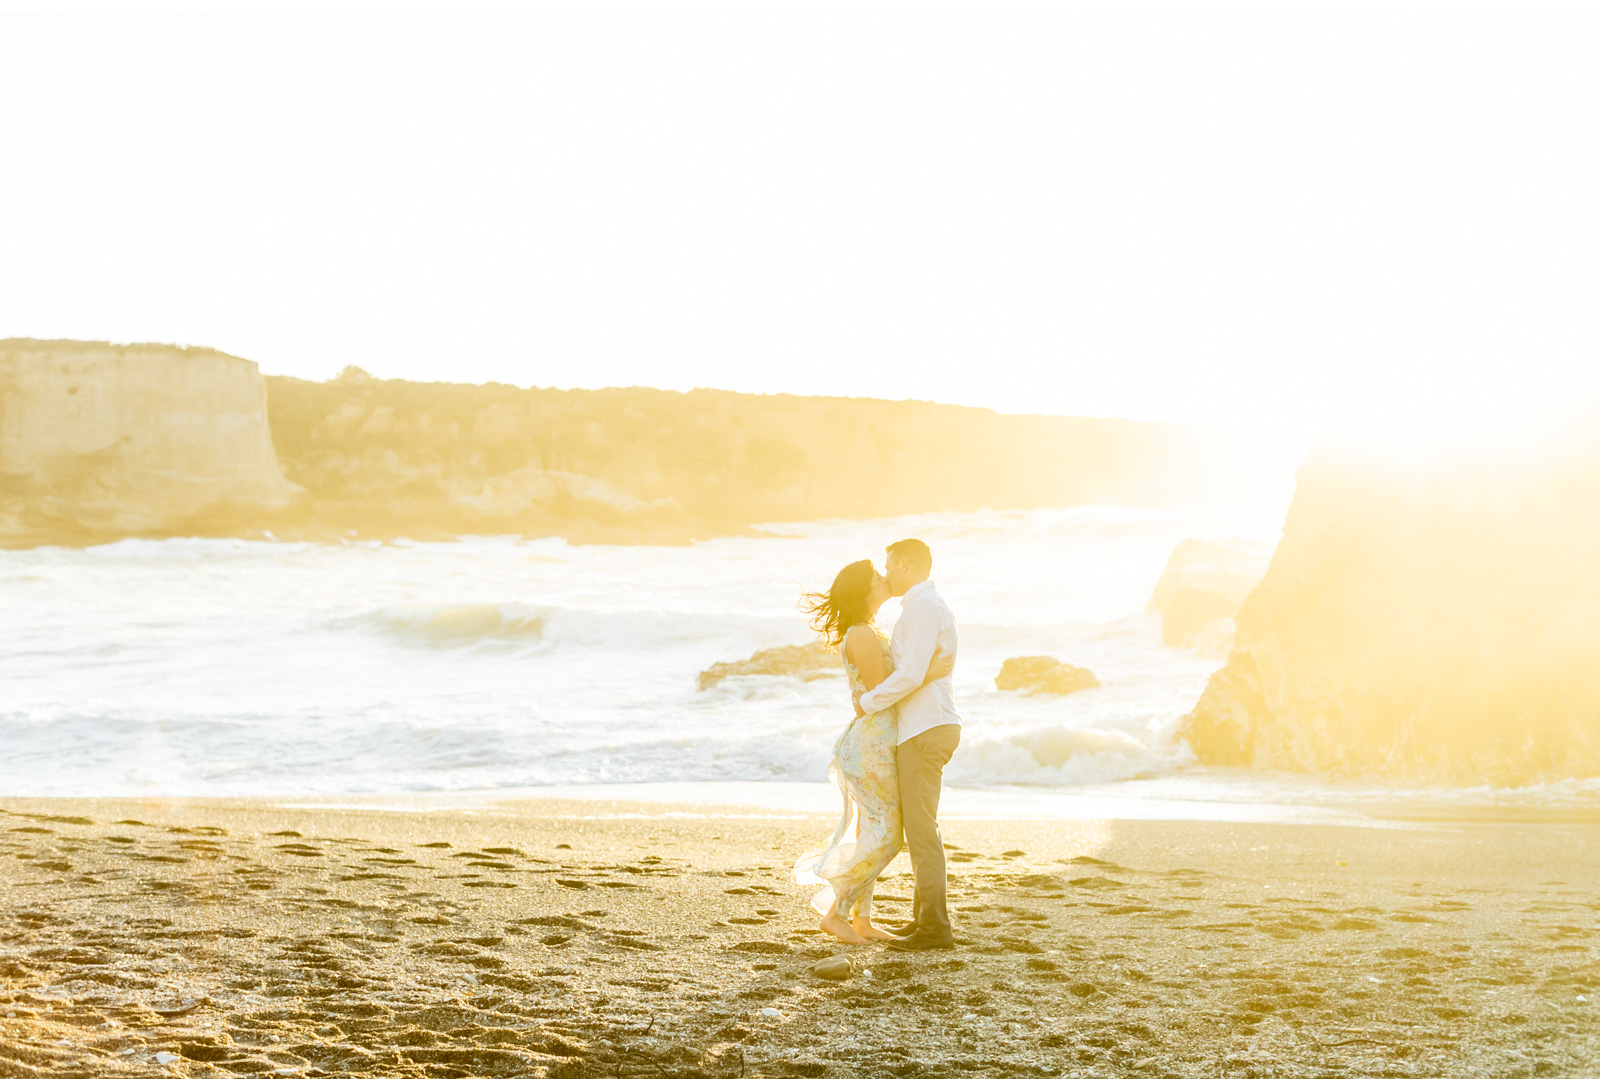 Malibu-Wedding-Photographer-Fine-Art-Photography-Professional-Wedding-Photography-Ocean-Engagement-Natalie-Schutt-Photography_01.jpg